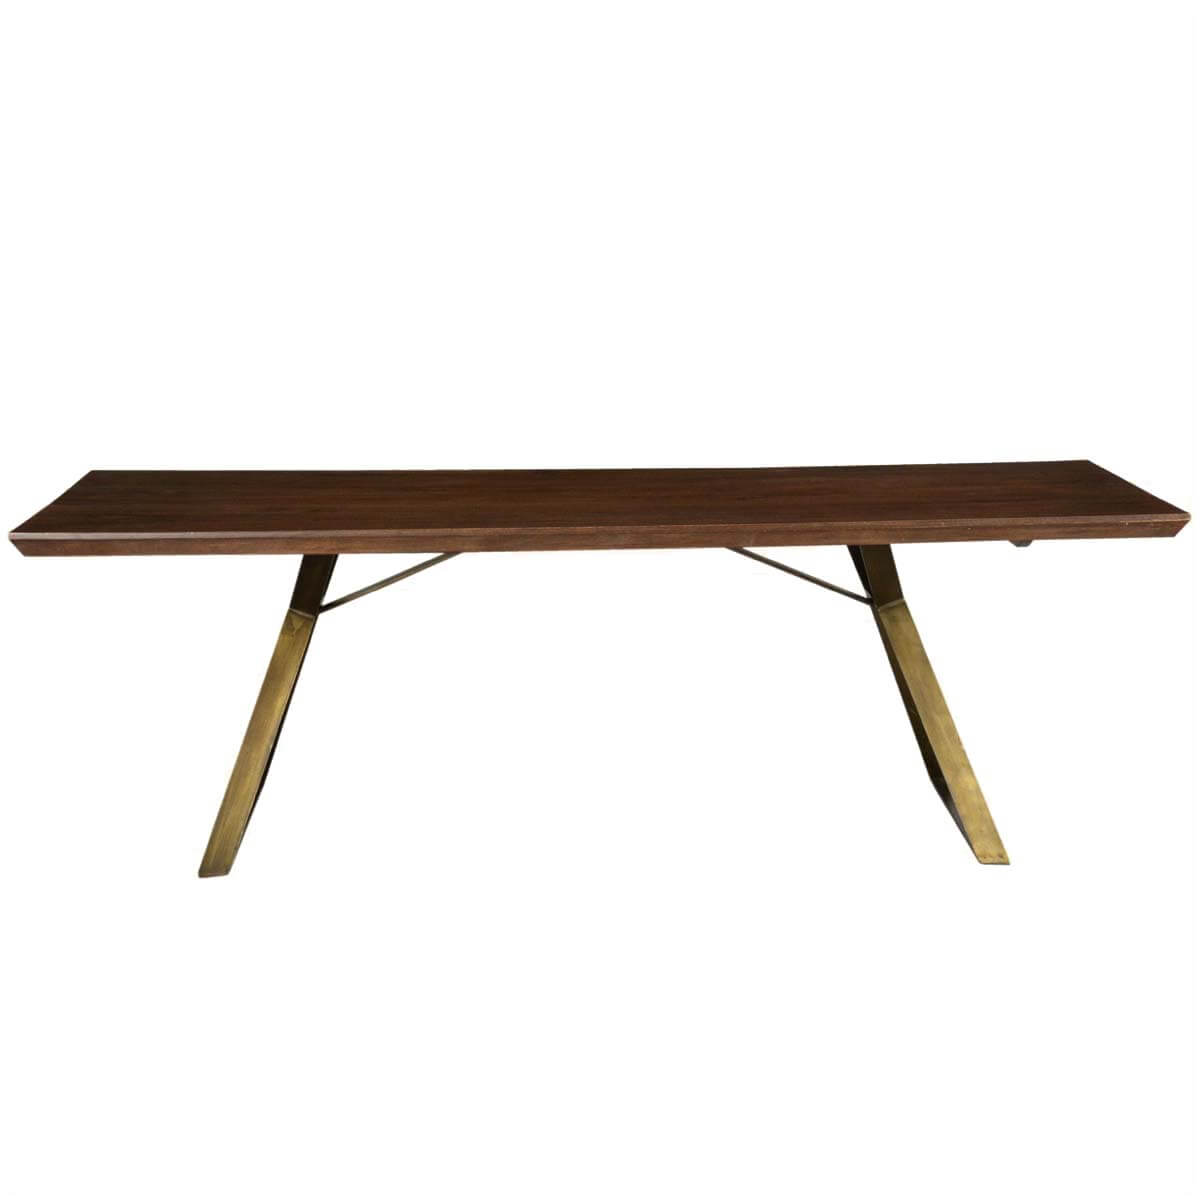 Industrial Style Dining Room Tables: Rustic Hankin Industrial Factory Loft Style Wood & Iron